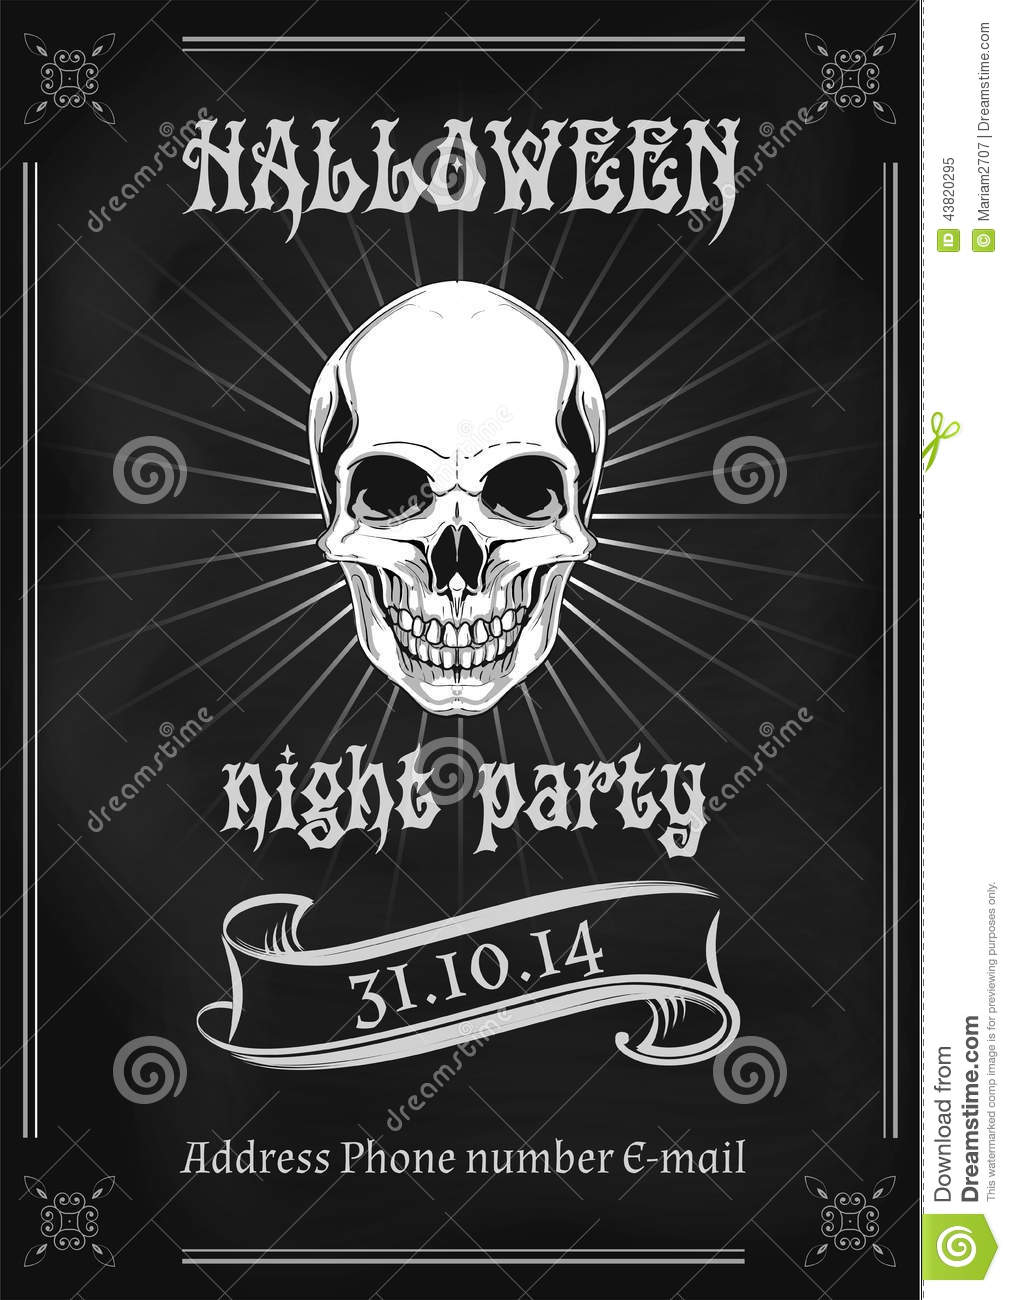 Vintage Halloween Party Flyer Stock Vector - Image: 43820295